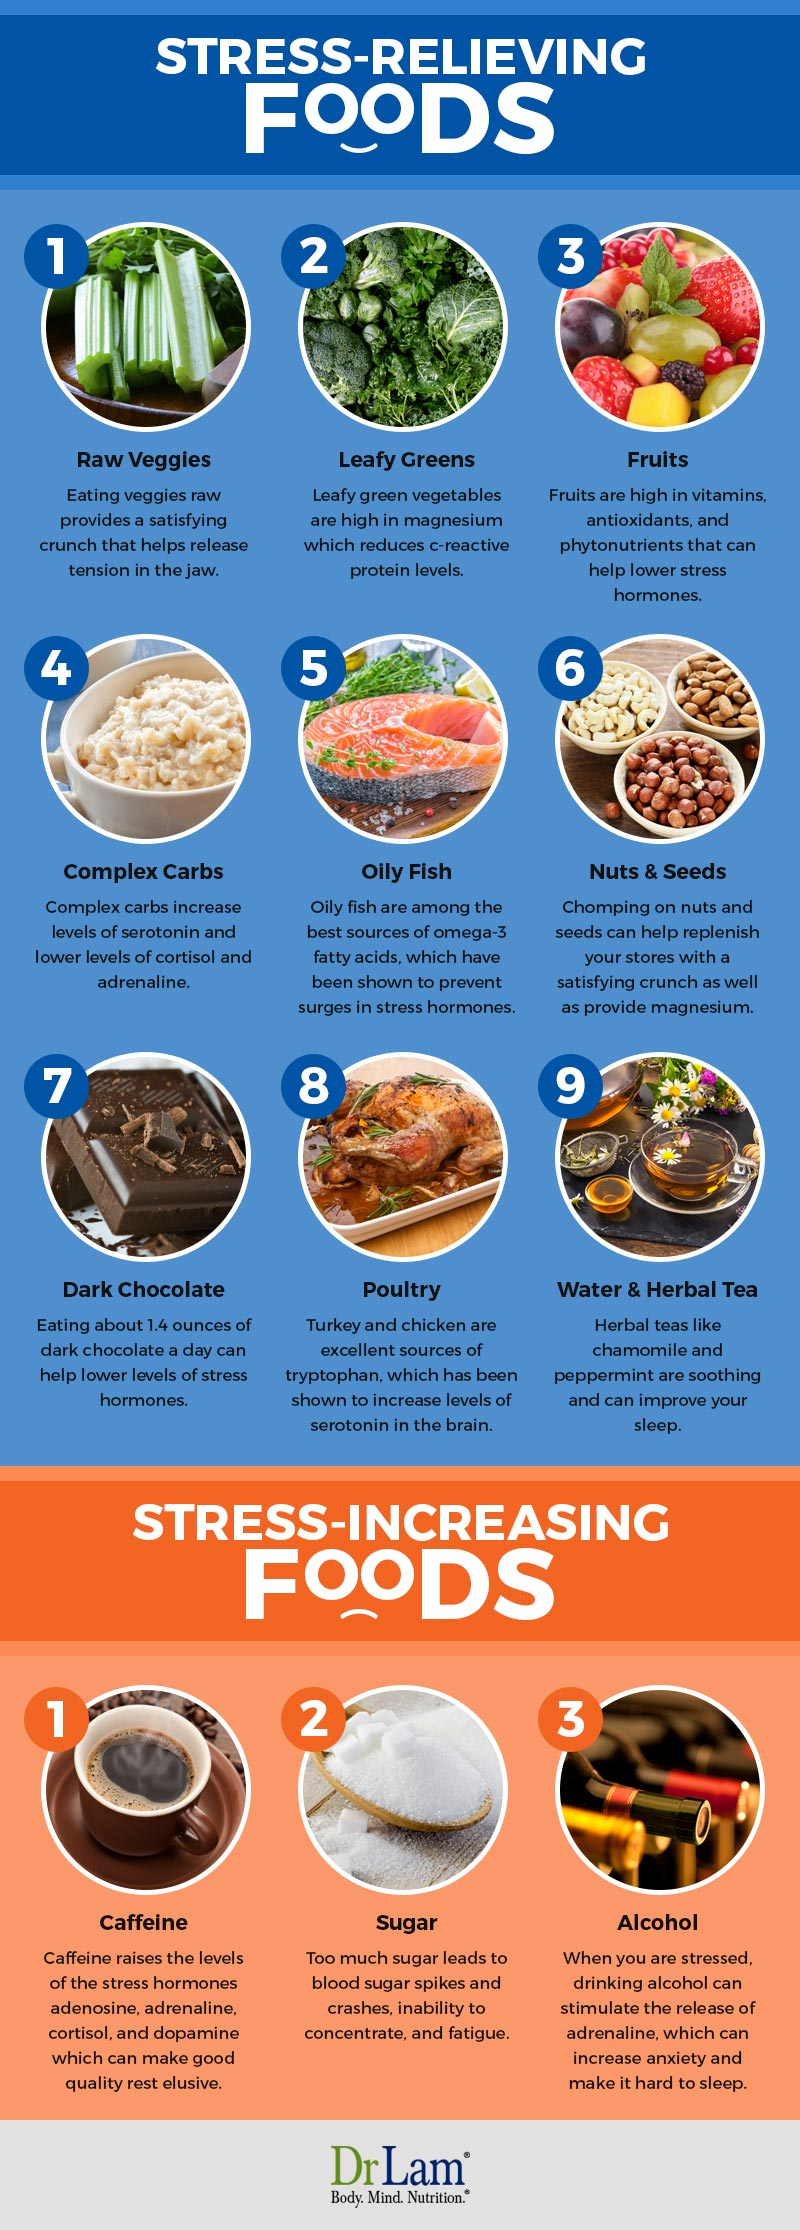 Check out this easy to understand infographic about stress relieving foods vs stress increasing foods